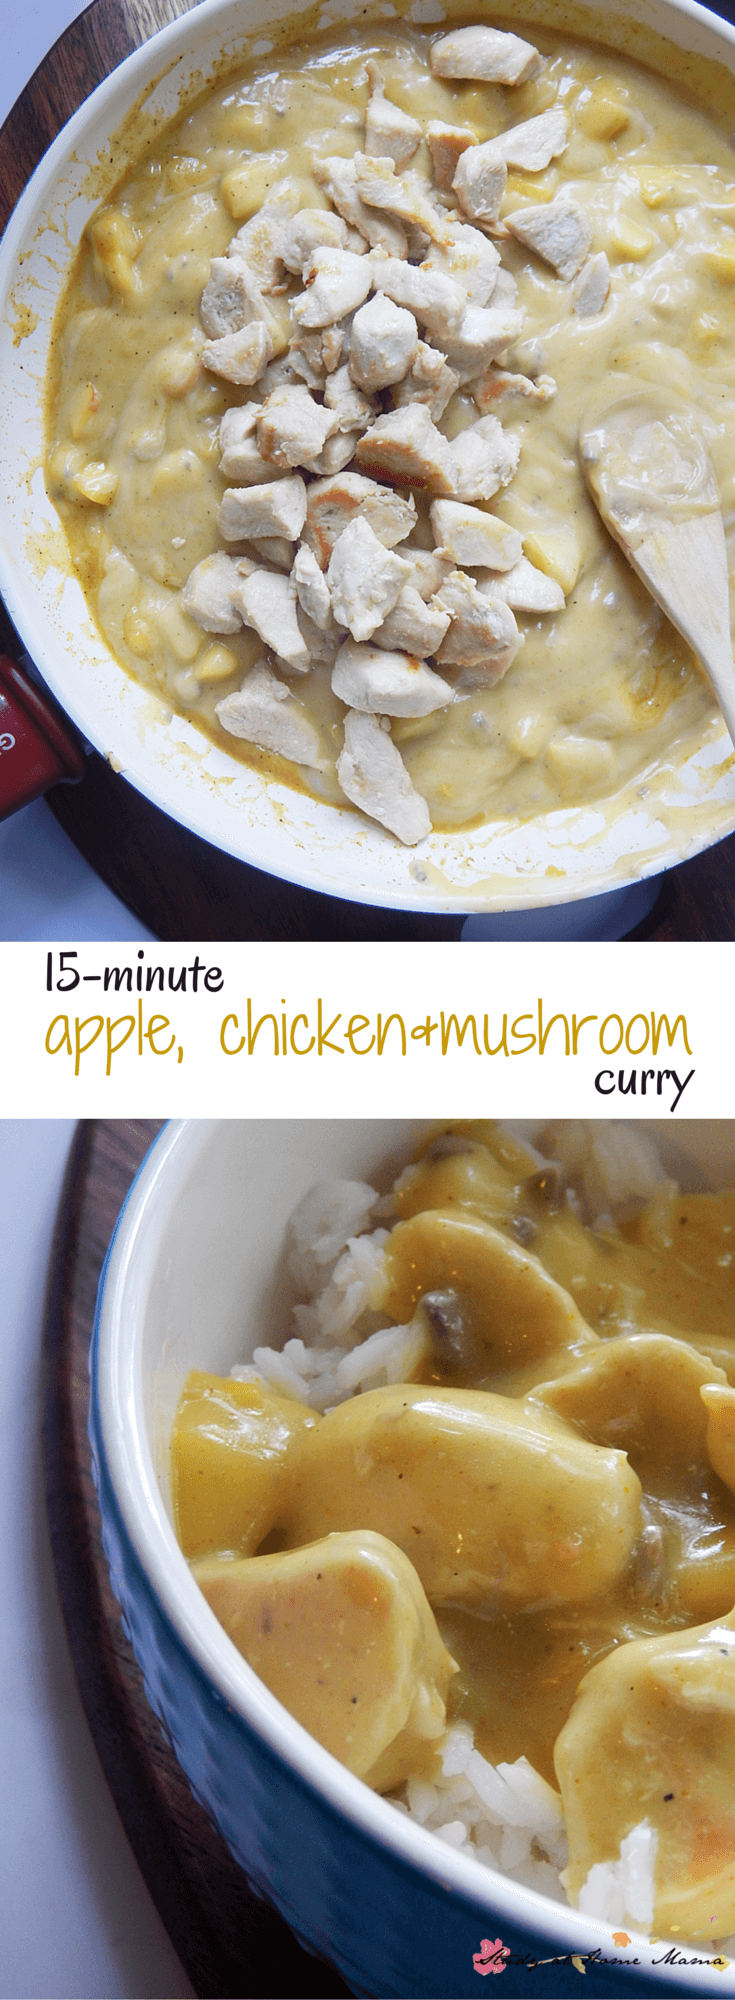 15-minute Apple, Chicken & Mushroom curry recipe - an easy healthy recipe for when you need a quick supper idea!